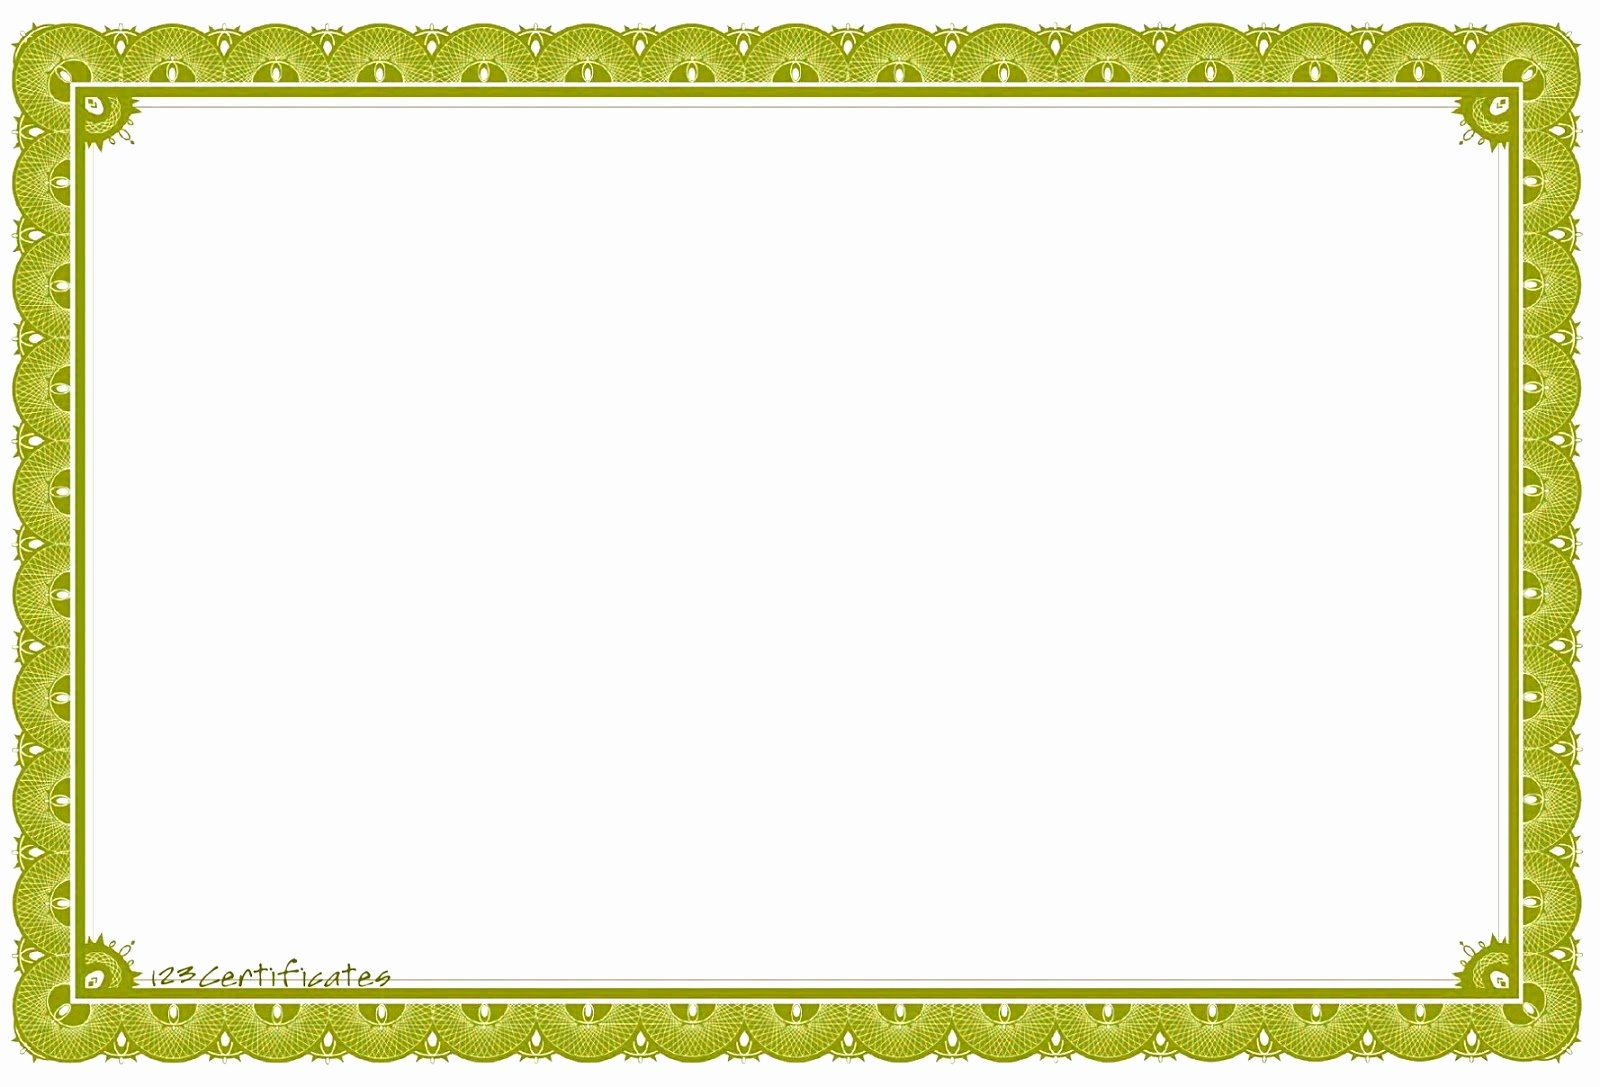 Images Of Certificate Borders Luxury Examples Best Certificate Best Certificate Border